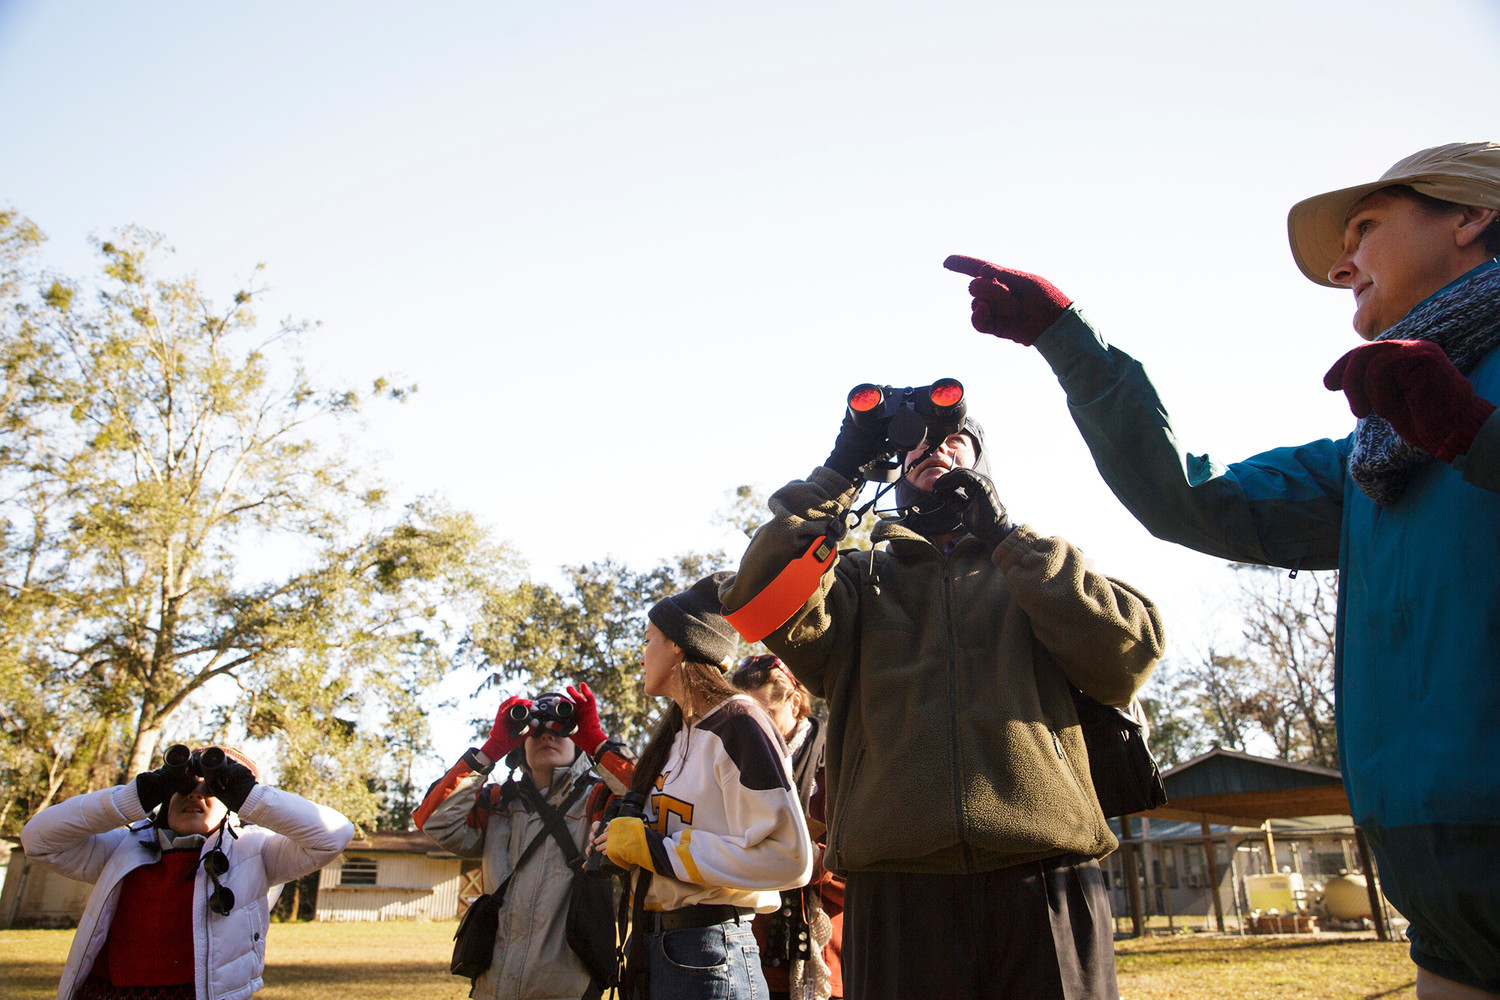 Participants in the annual Christmas Bird Count for Kids direct their binoculars to a tree where a bird had been spotted by the experienced birders who led groups throughout the grounds at Camp Chowenwaw to check birds off their list and make their count.